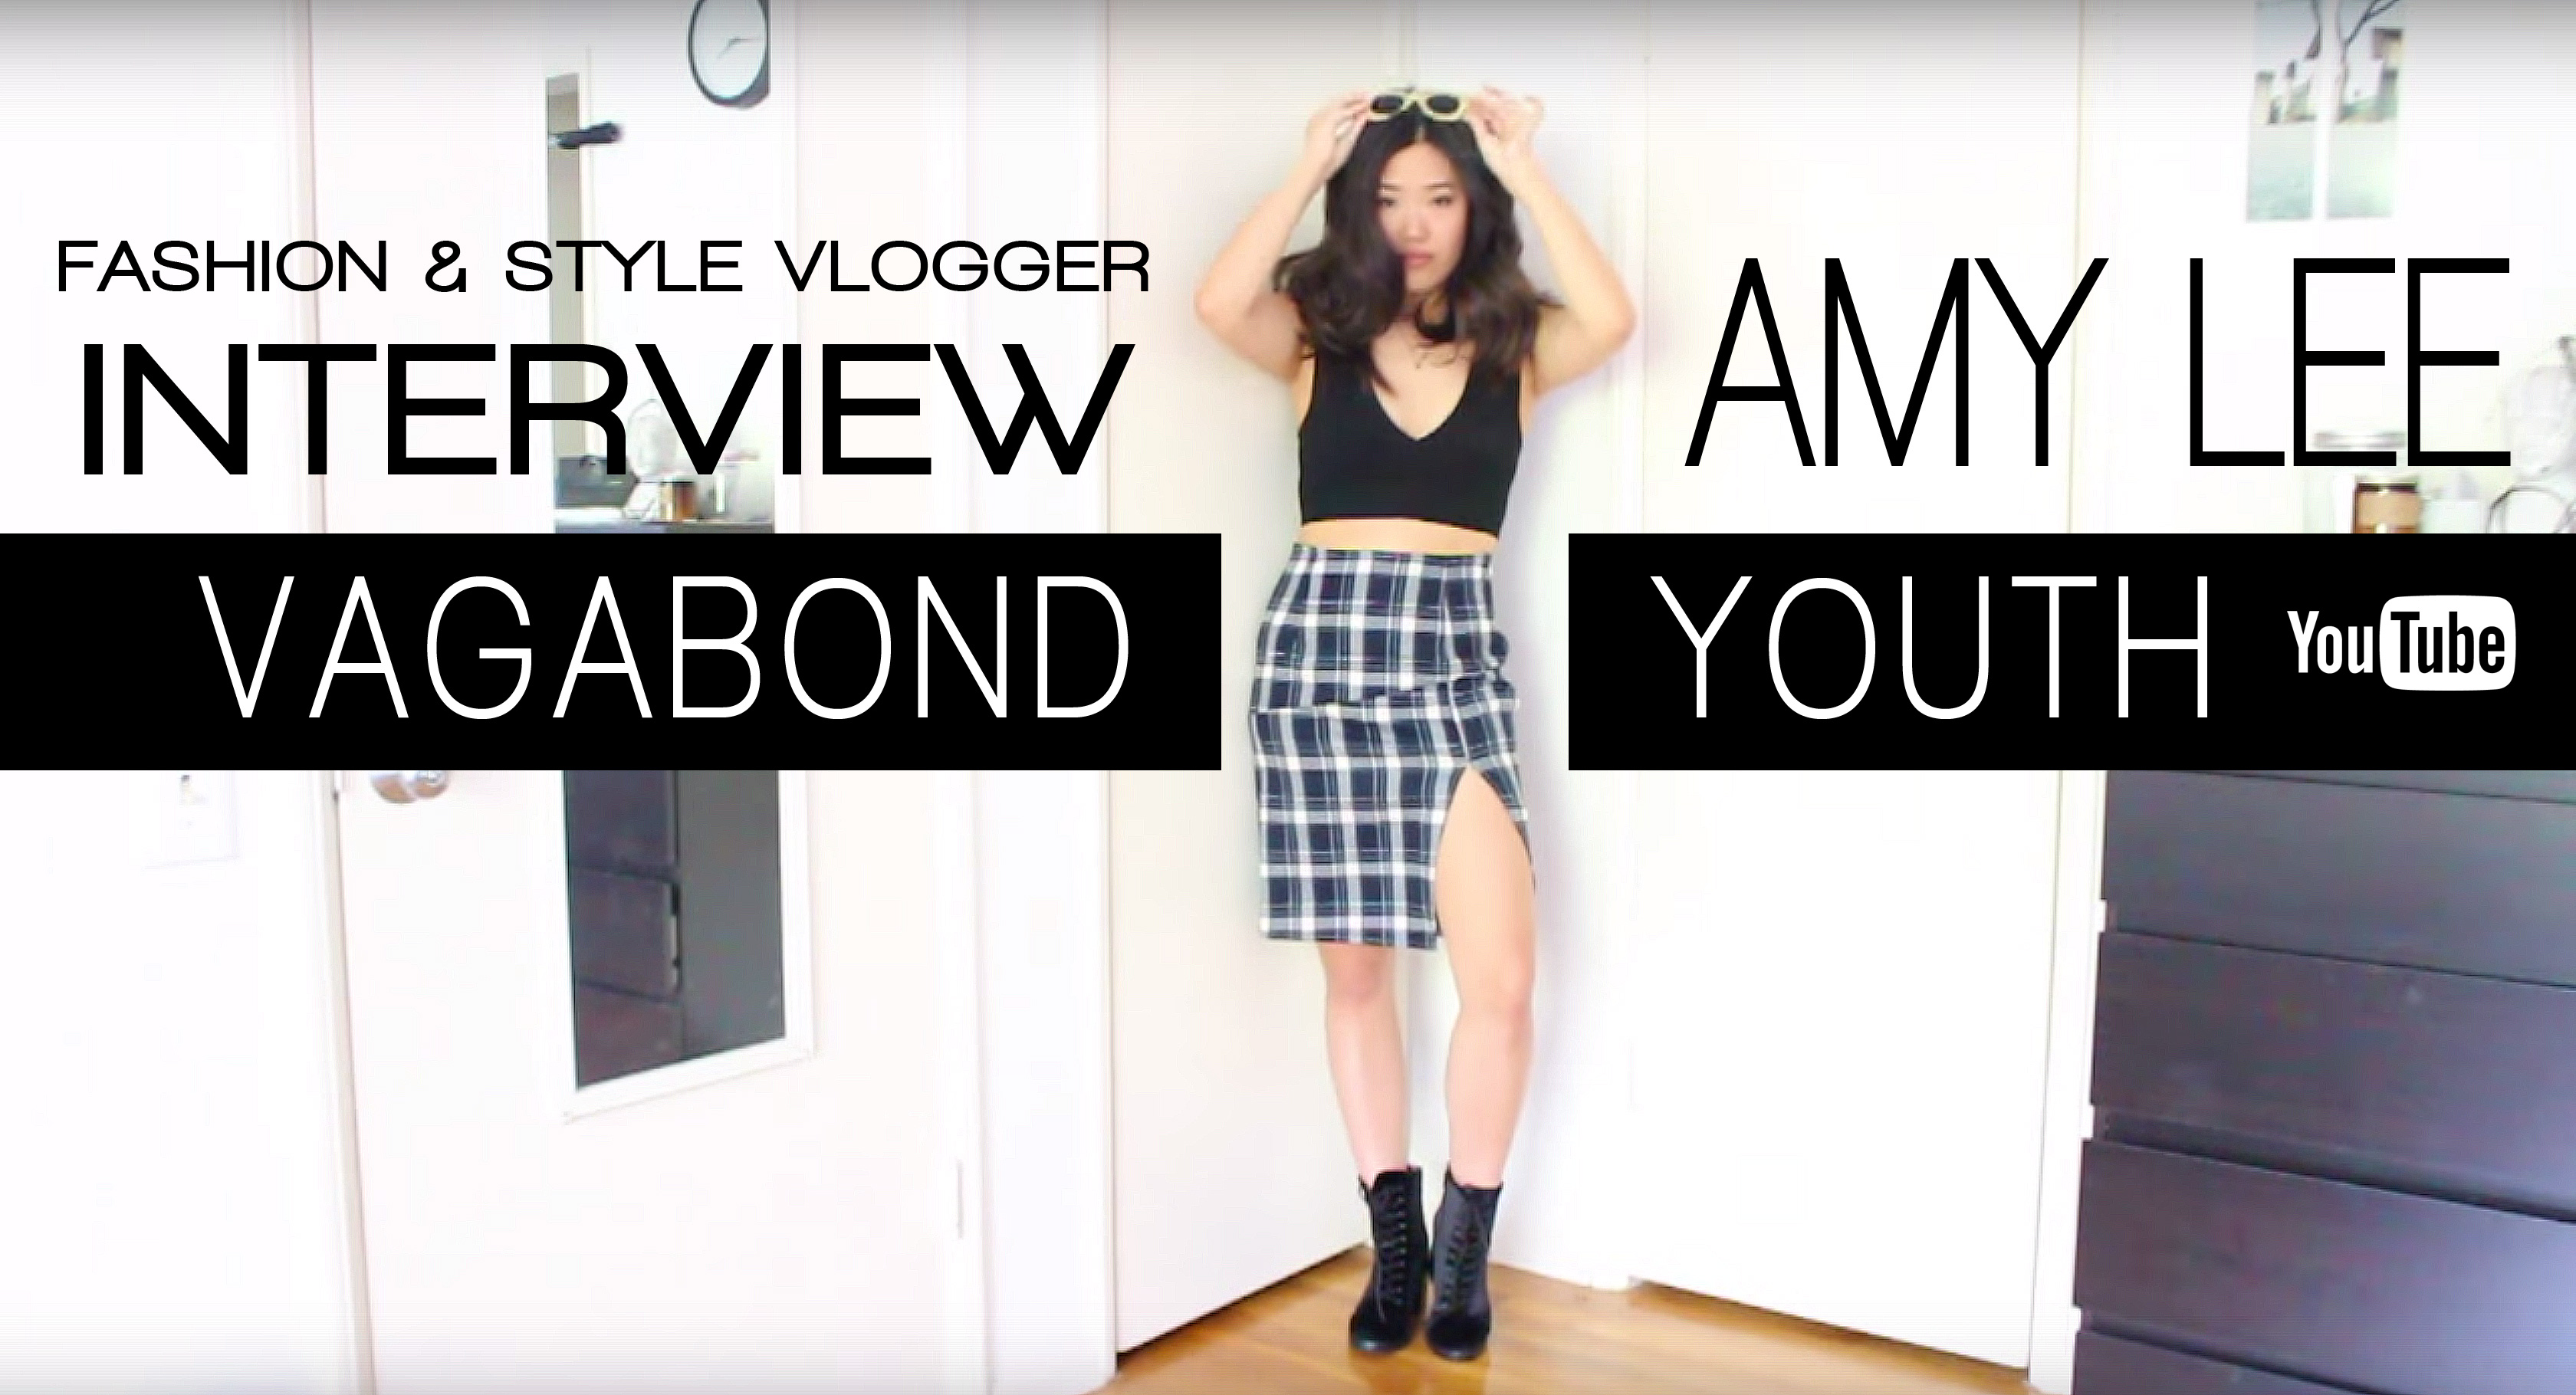 Fashion Style Youtuber Interview Vagabond Youth By Amy Lee Mith Magazine